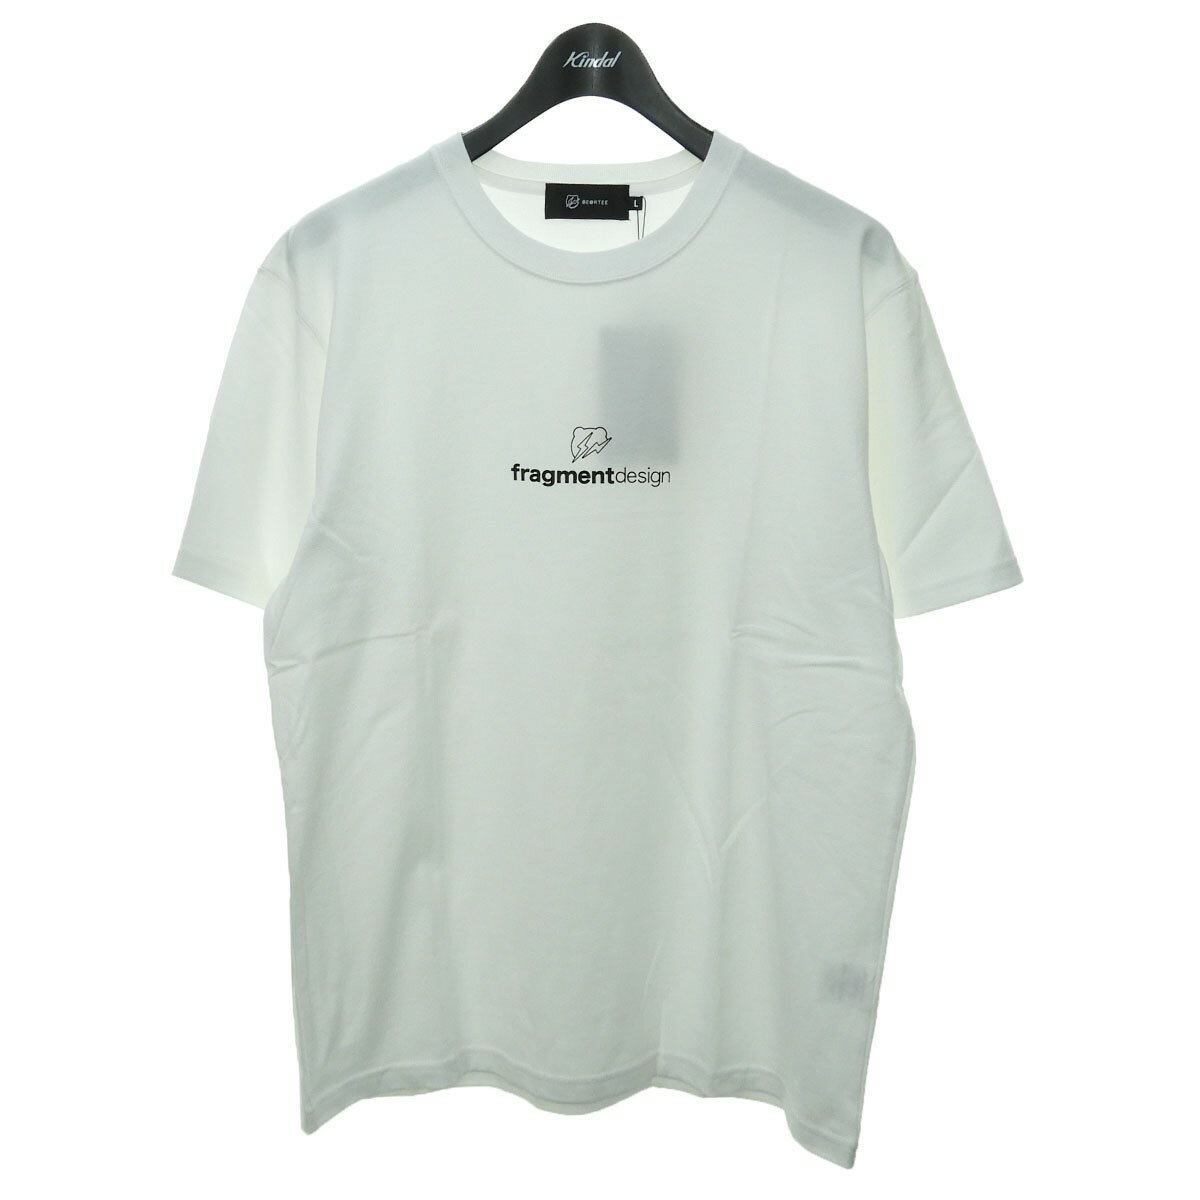 トップス, Tシャツ・カットソー FRAGMENT DESIGNBEBRICK MEDICOM TOY EXHIBITION 2020 IN VIRTUAL T L 190221